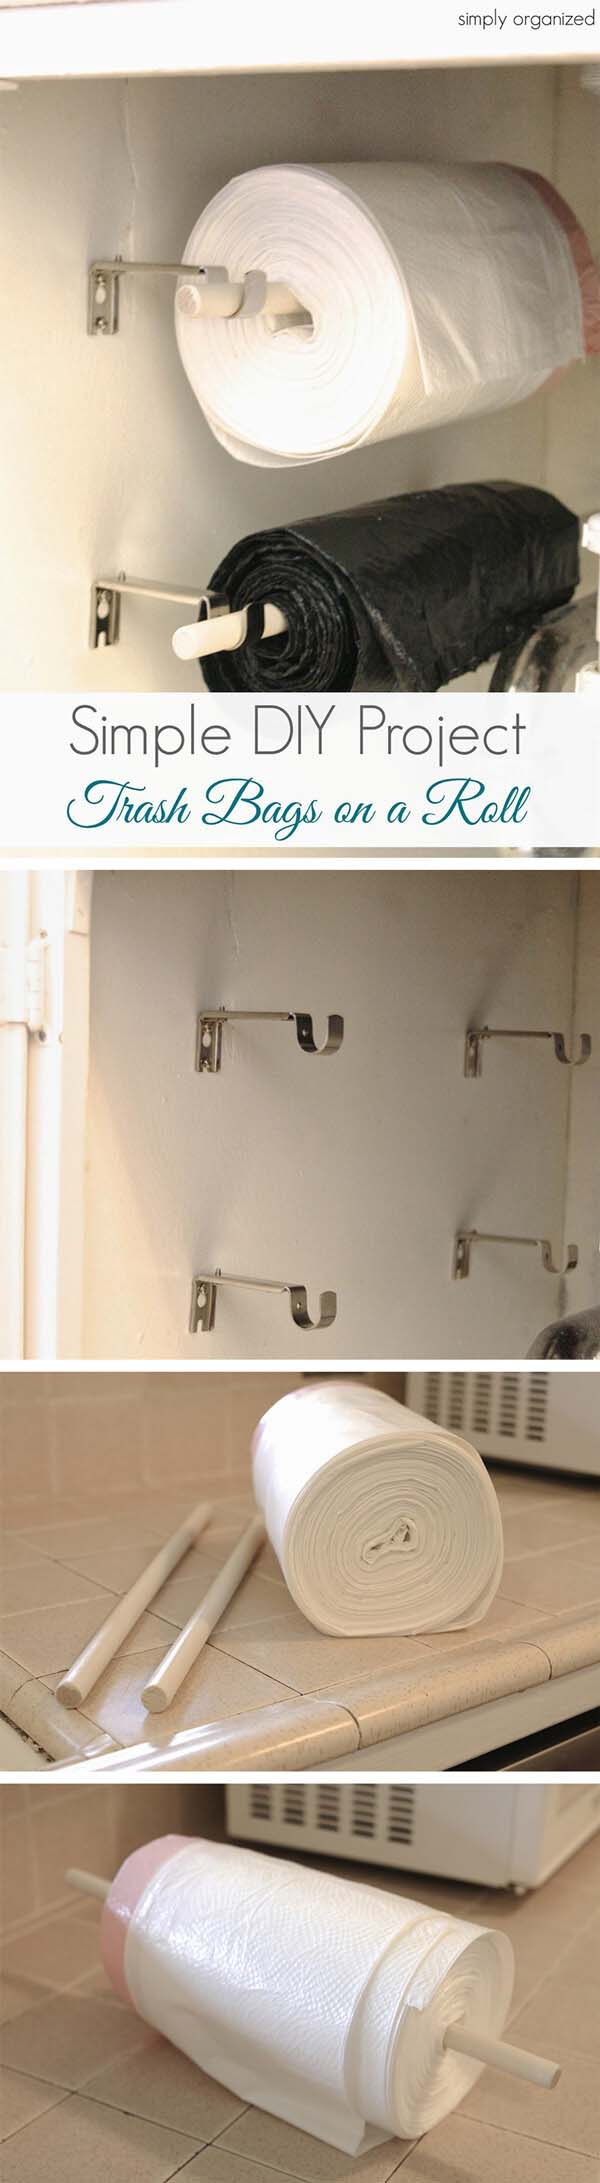 DIY Wall-Mounted Trash Bag Rollers #dollarstore #storage #organization #decorhomeideas